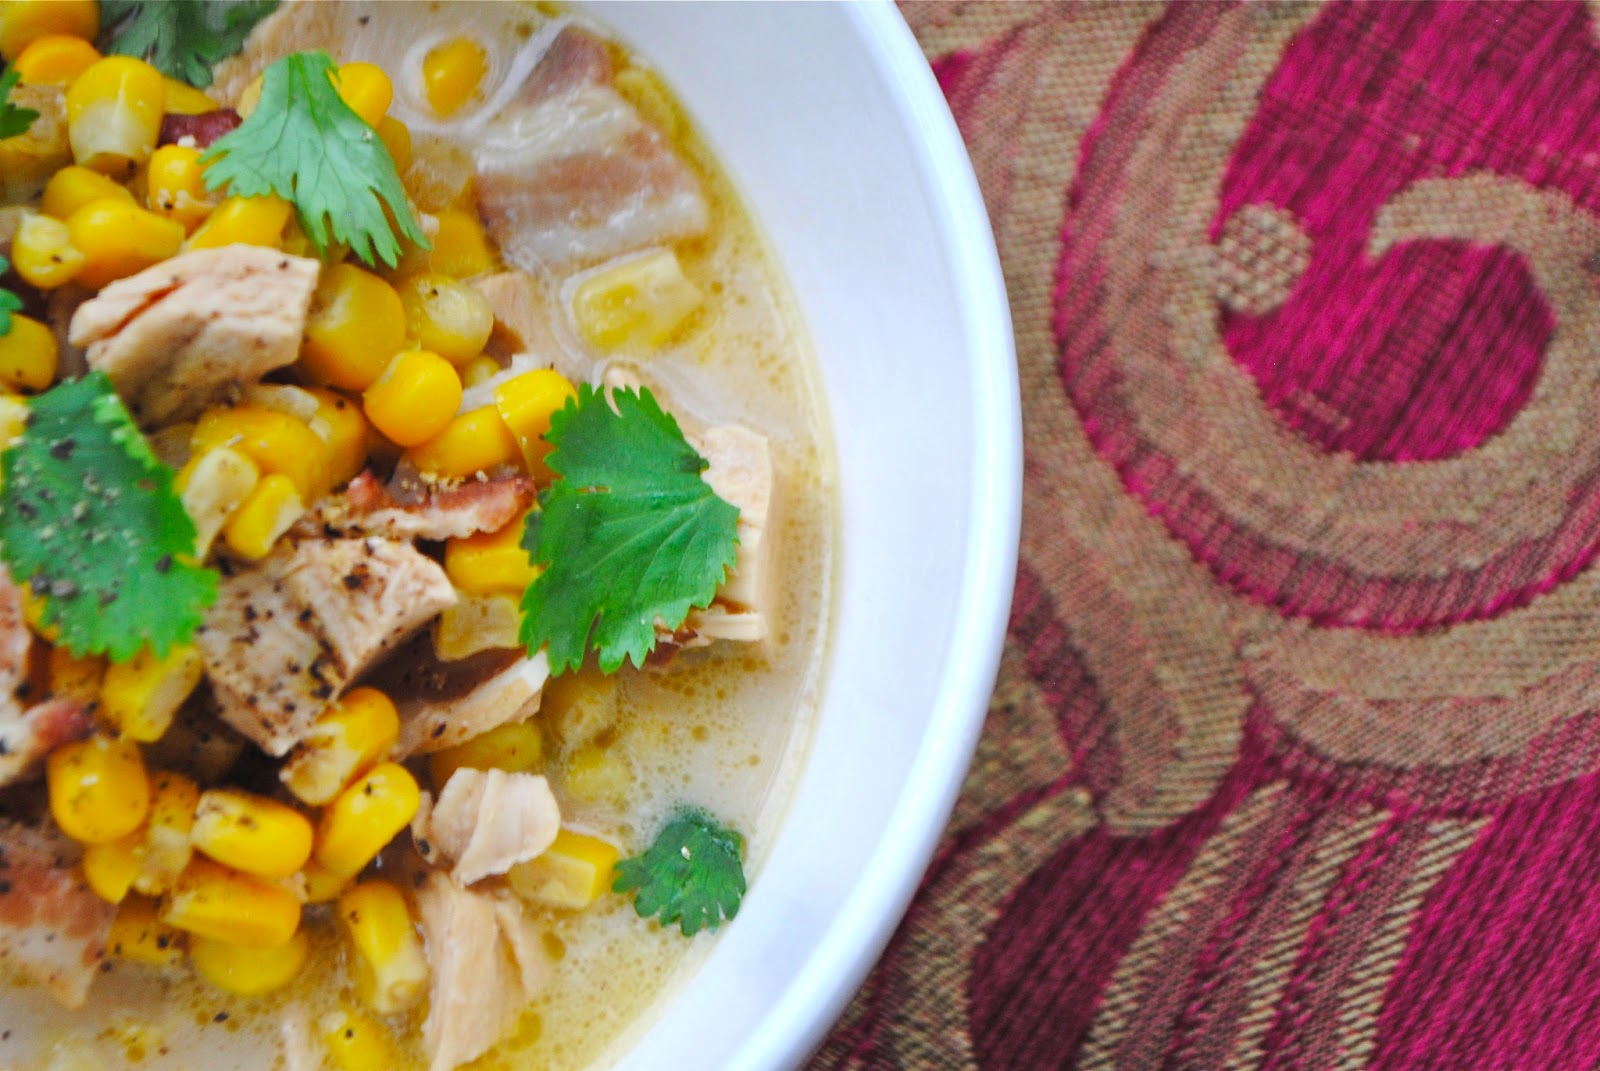 ... : SPICY CHICKEN AND CORN CHOWDER and ROASTED CAULIFLOWER POTATO SOUP